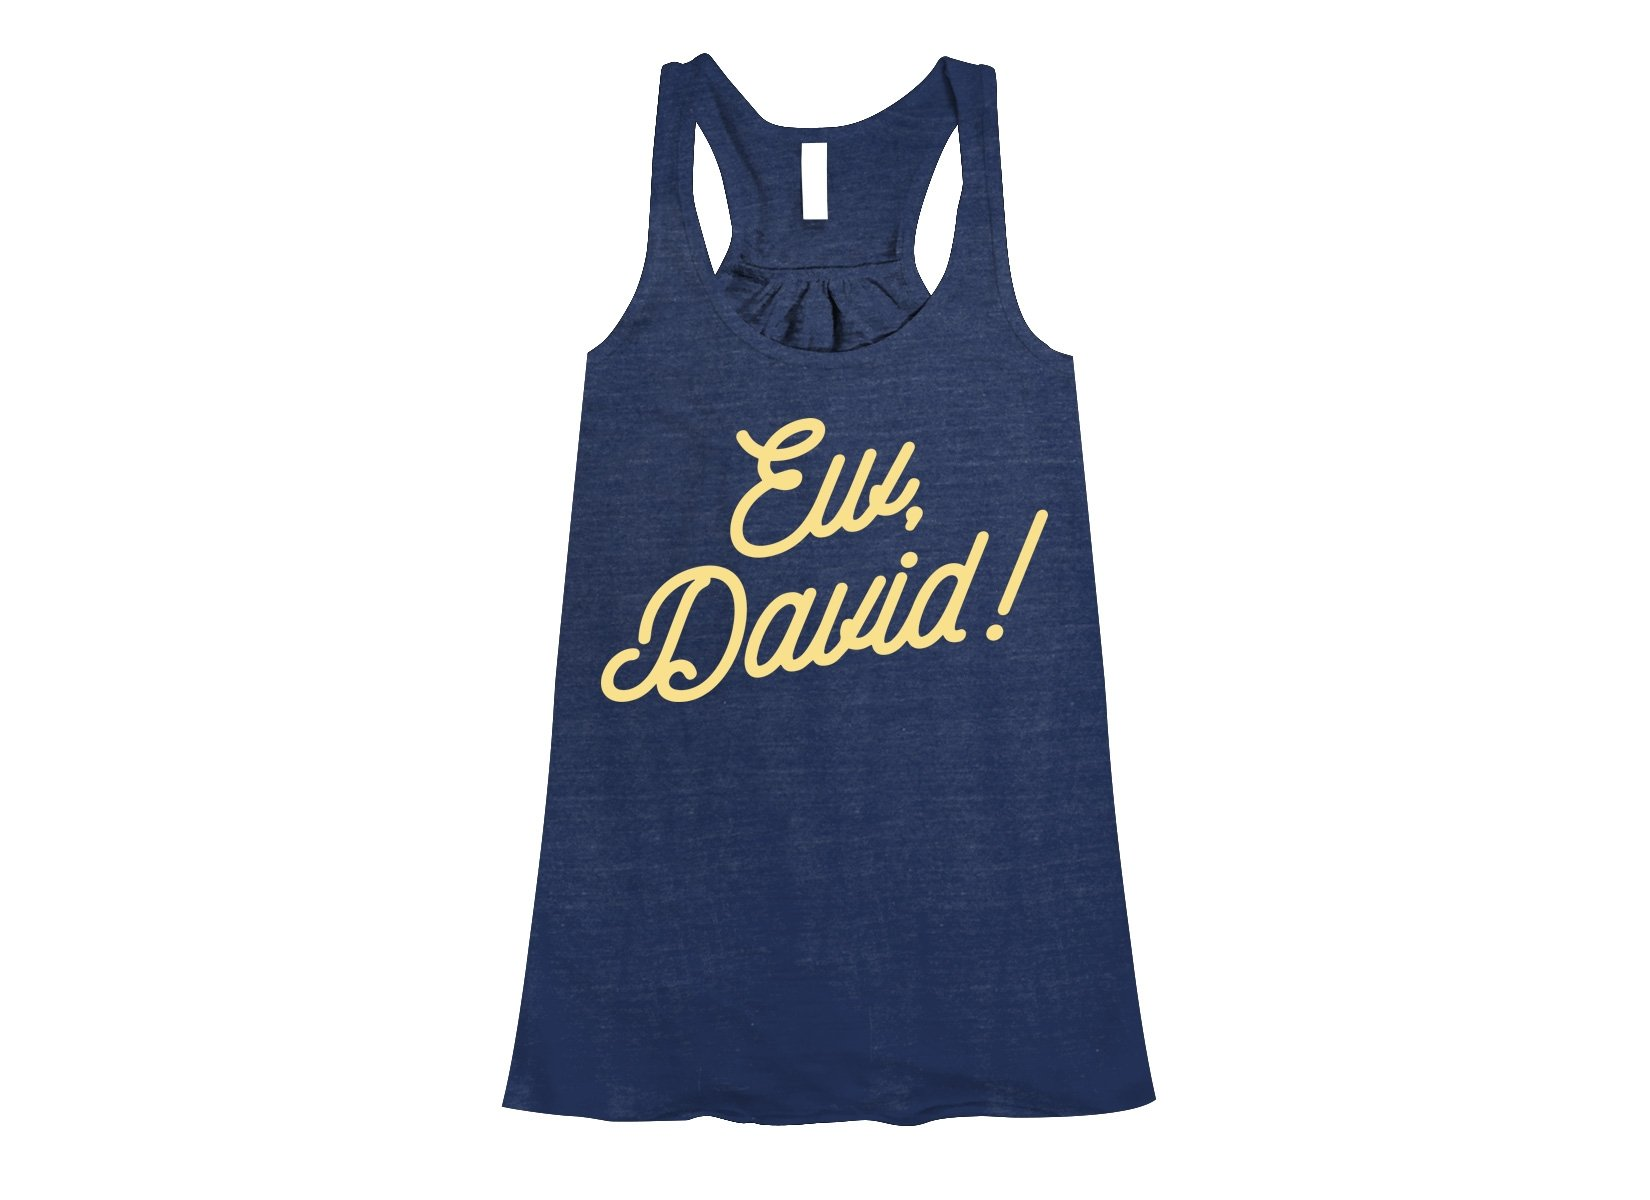 Ew, David! on Womens Tanks T-Shirt